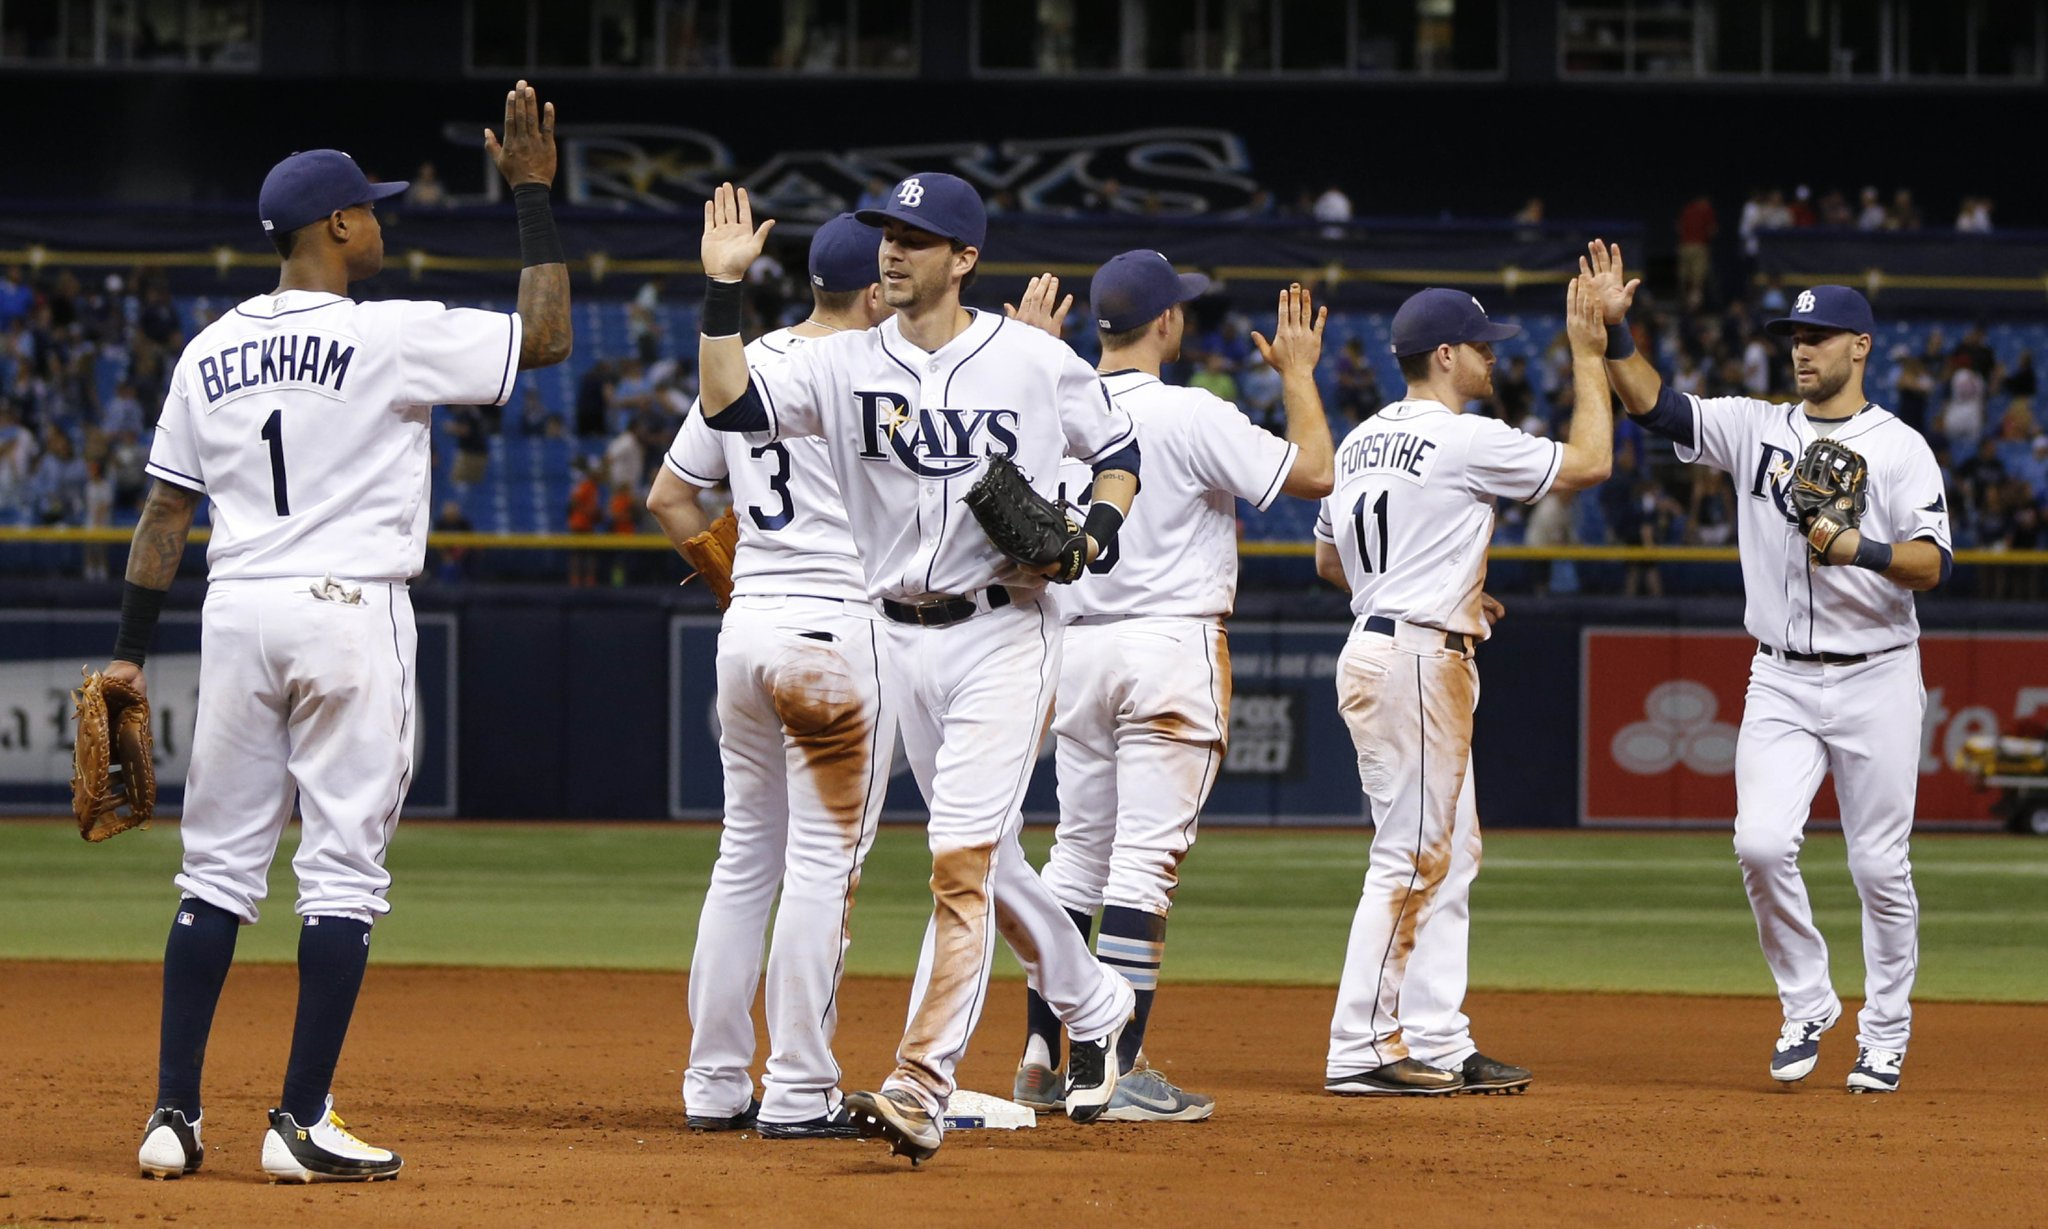 The Tampa Bay Rays improved to 6-3 on the 10-game homestand, and clinched their first winning homestand of the season. (Photo Credit: Tampa Bay Rays)